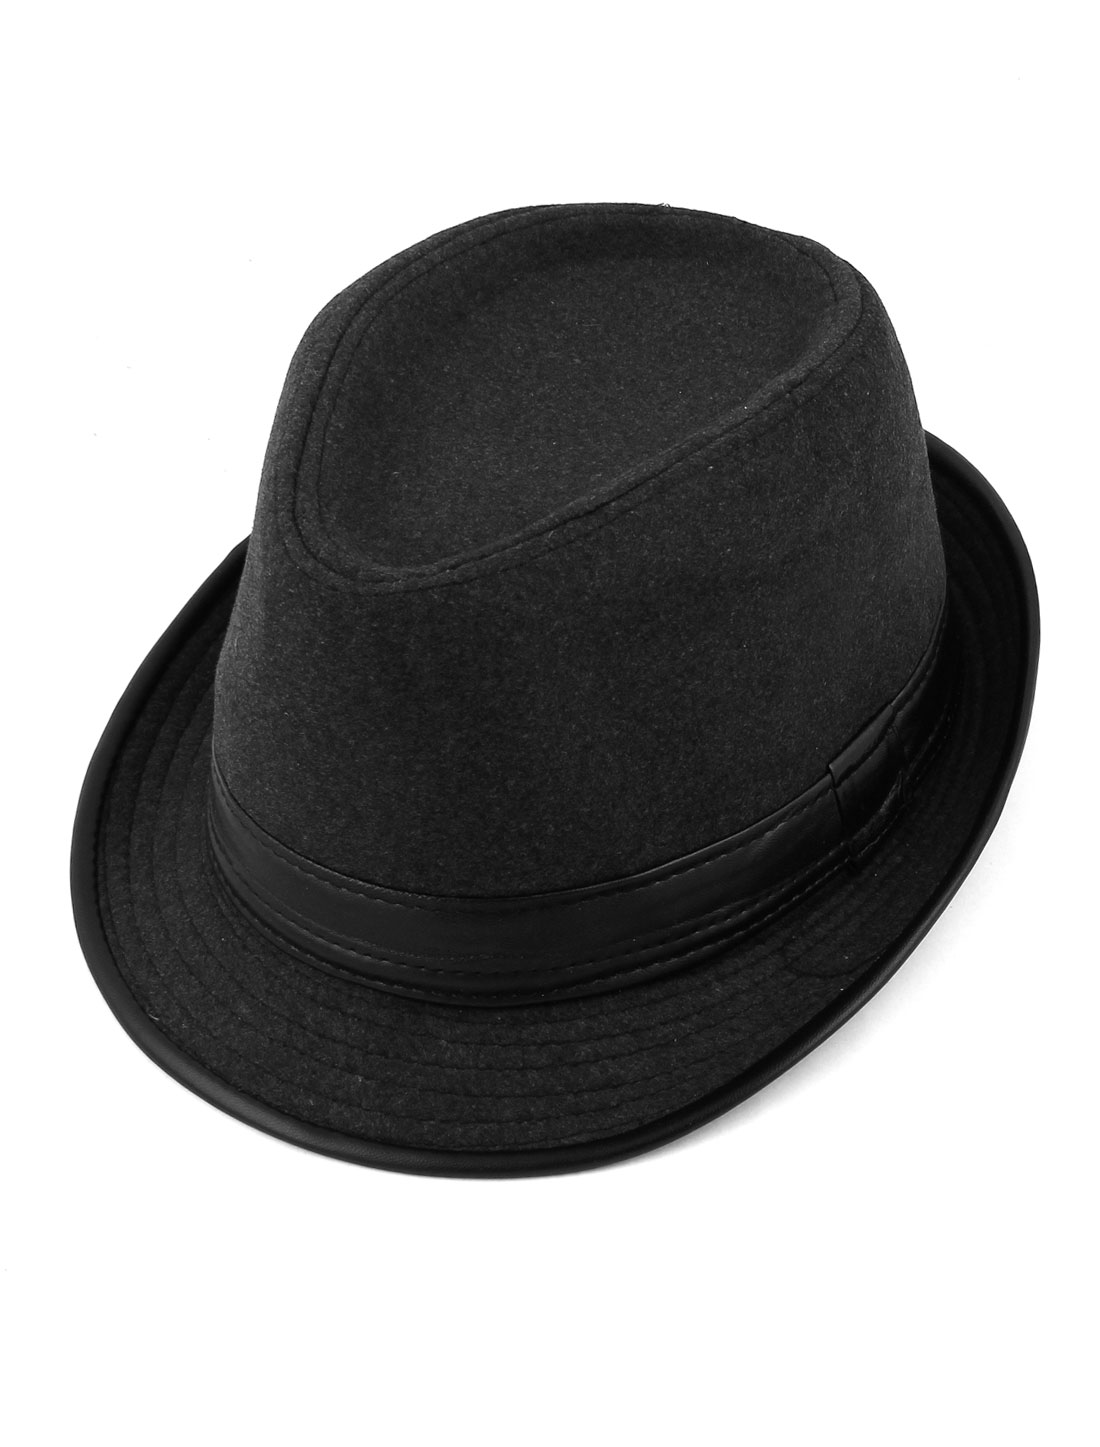 Travel Outdoor Faux Leather Brim Fedora Hat Cap Gray for Men